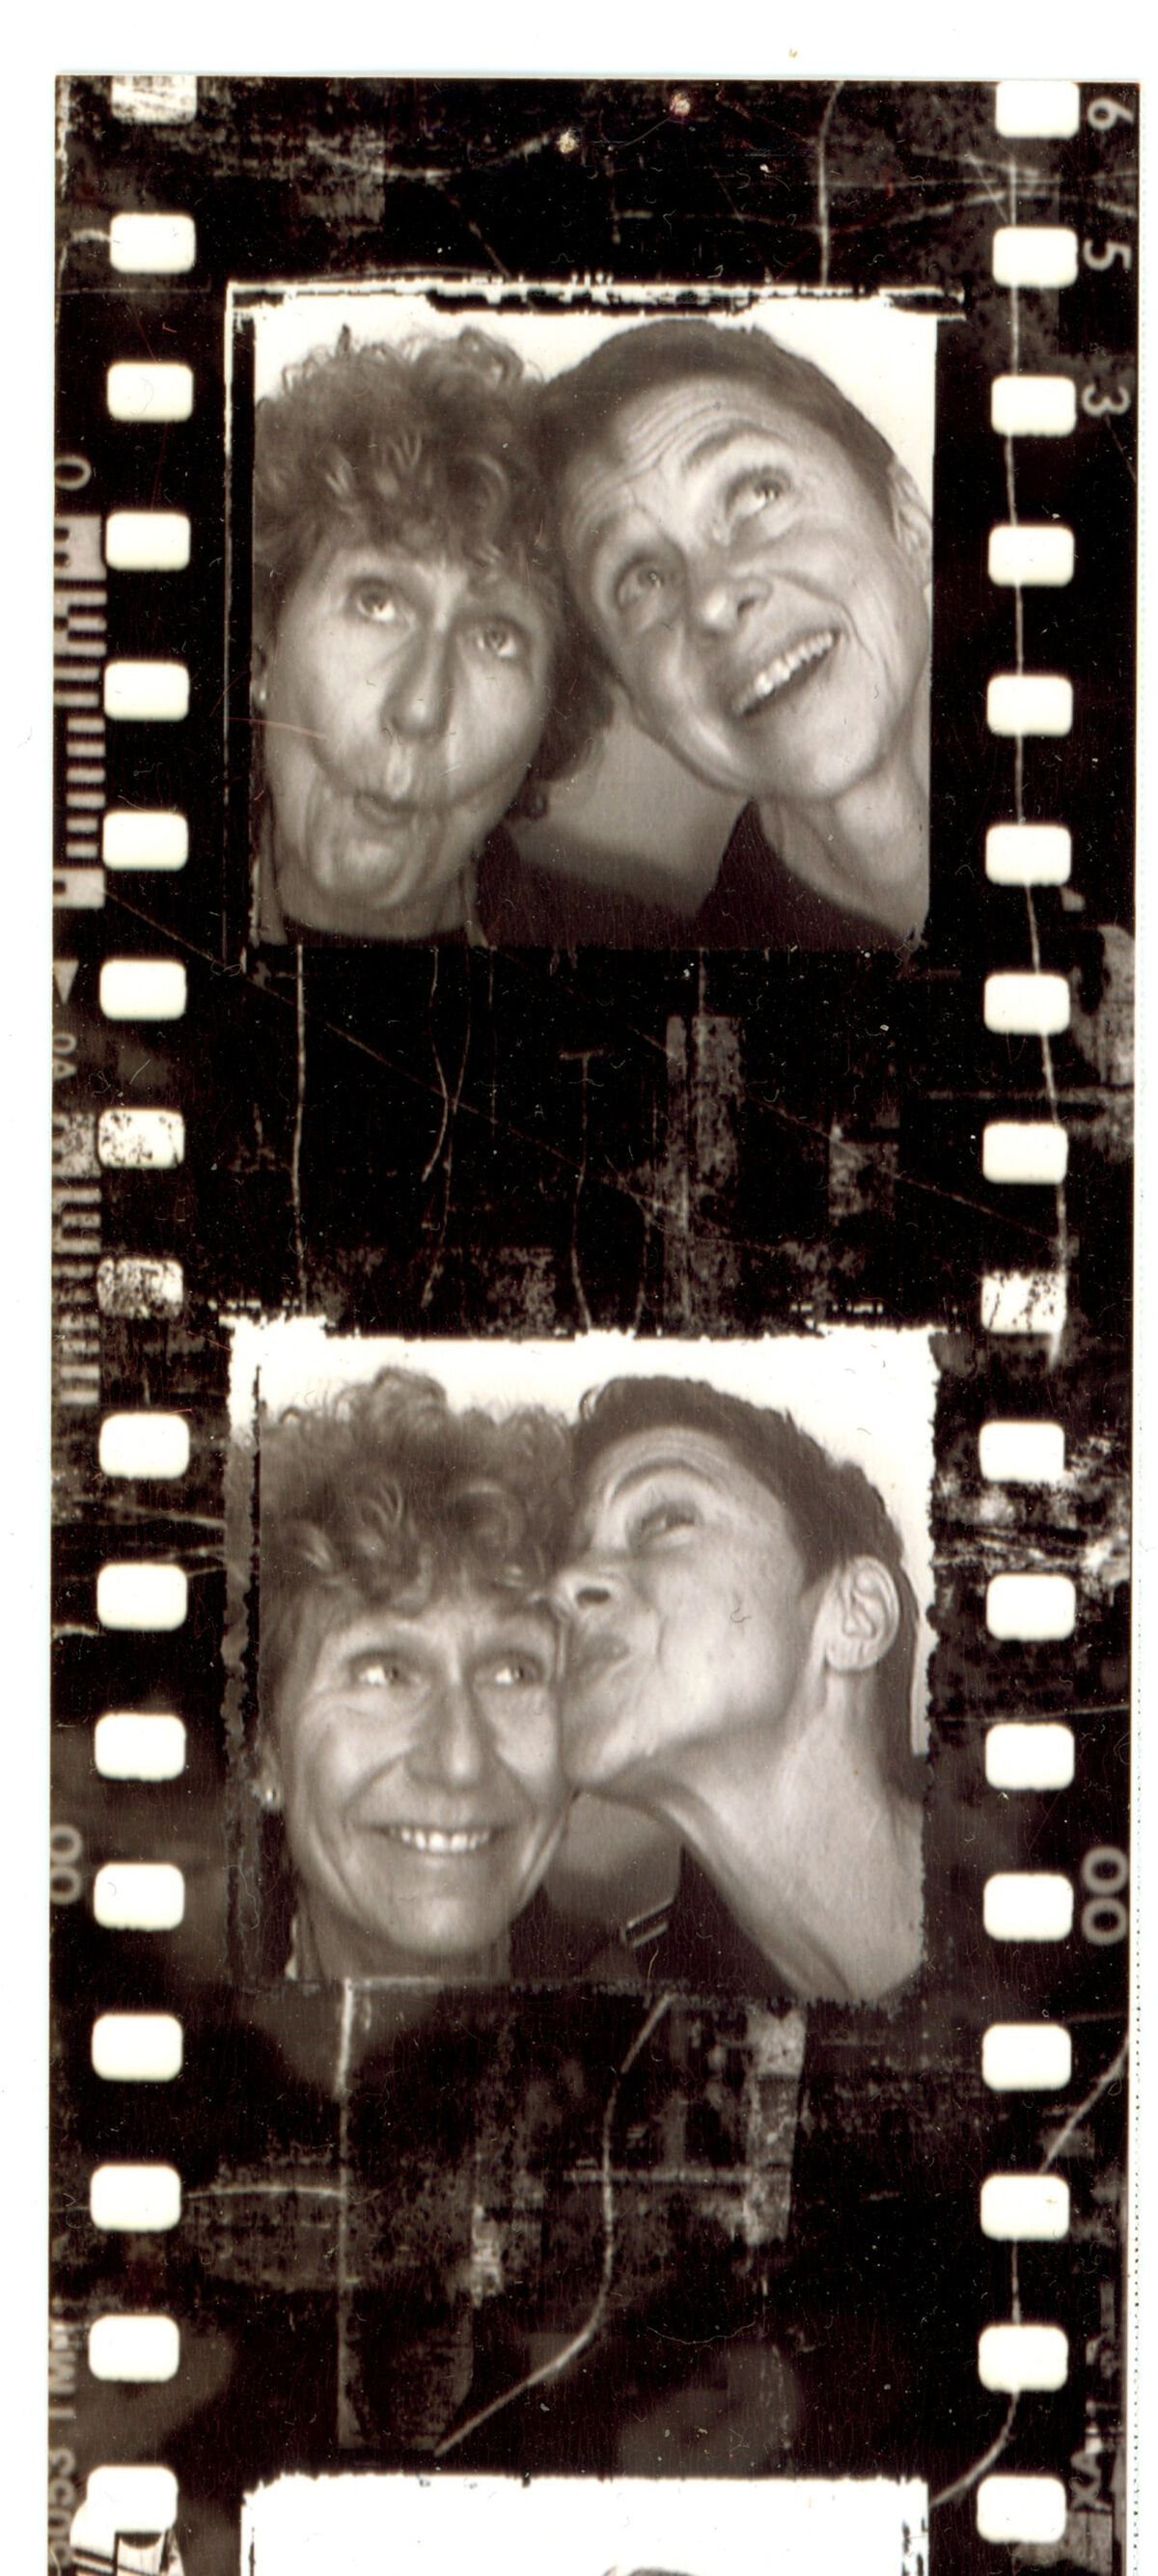 Barbara Levine & Paige Ramey. Courtesy of the Collection of Barbara Levine / Project B.